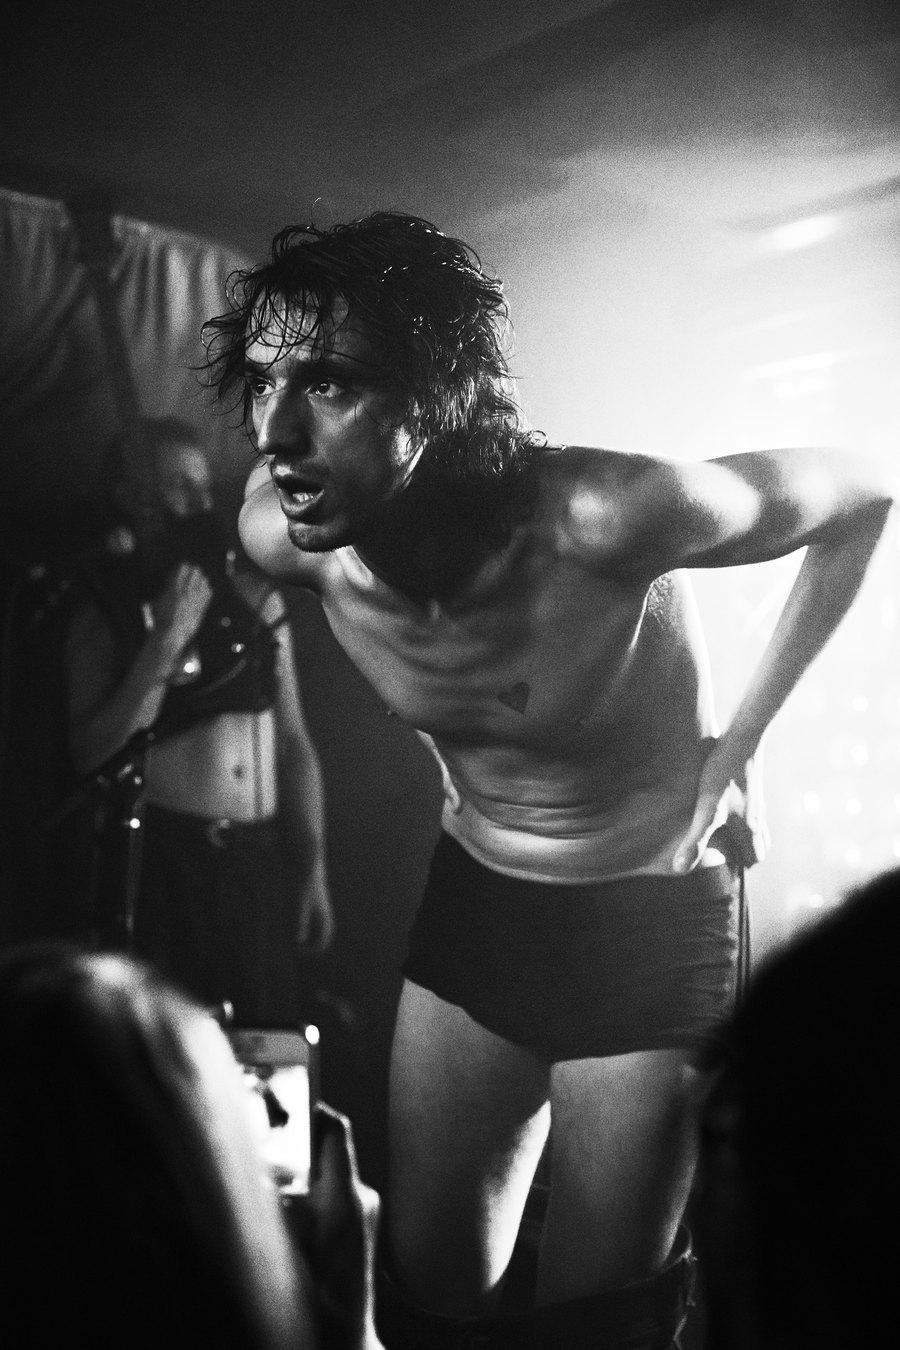 The Fat White Family - Julien Roubinet 5